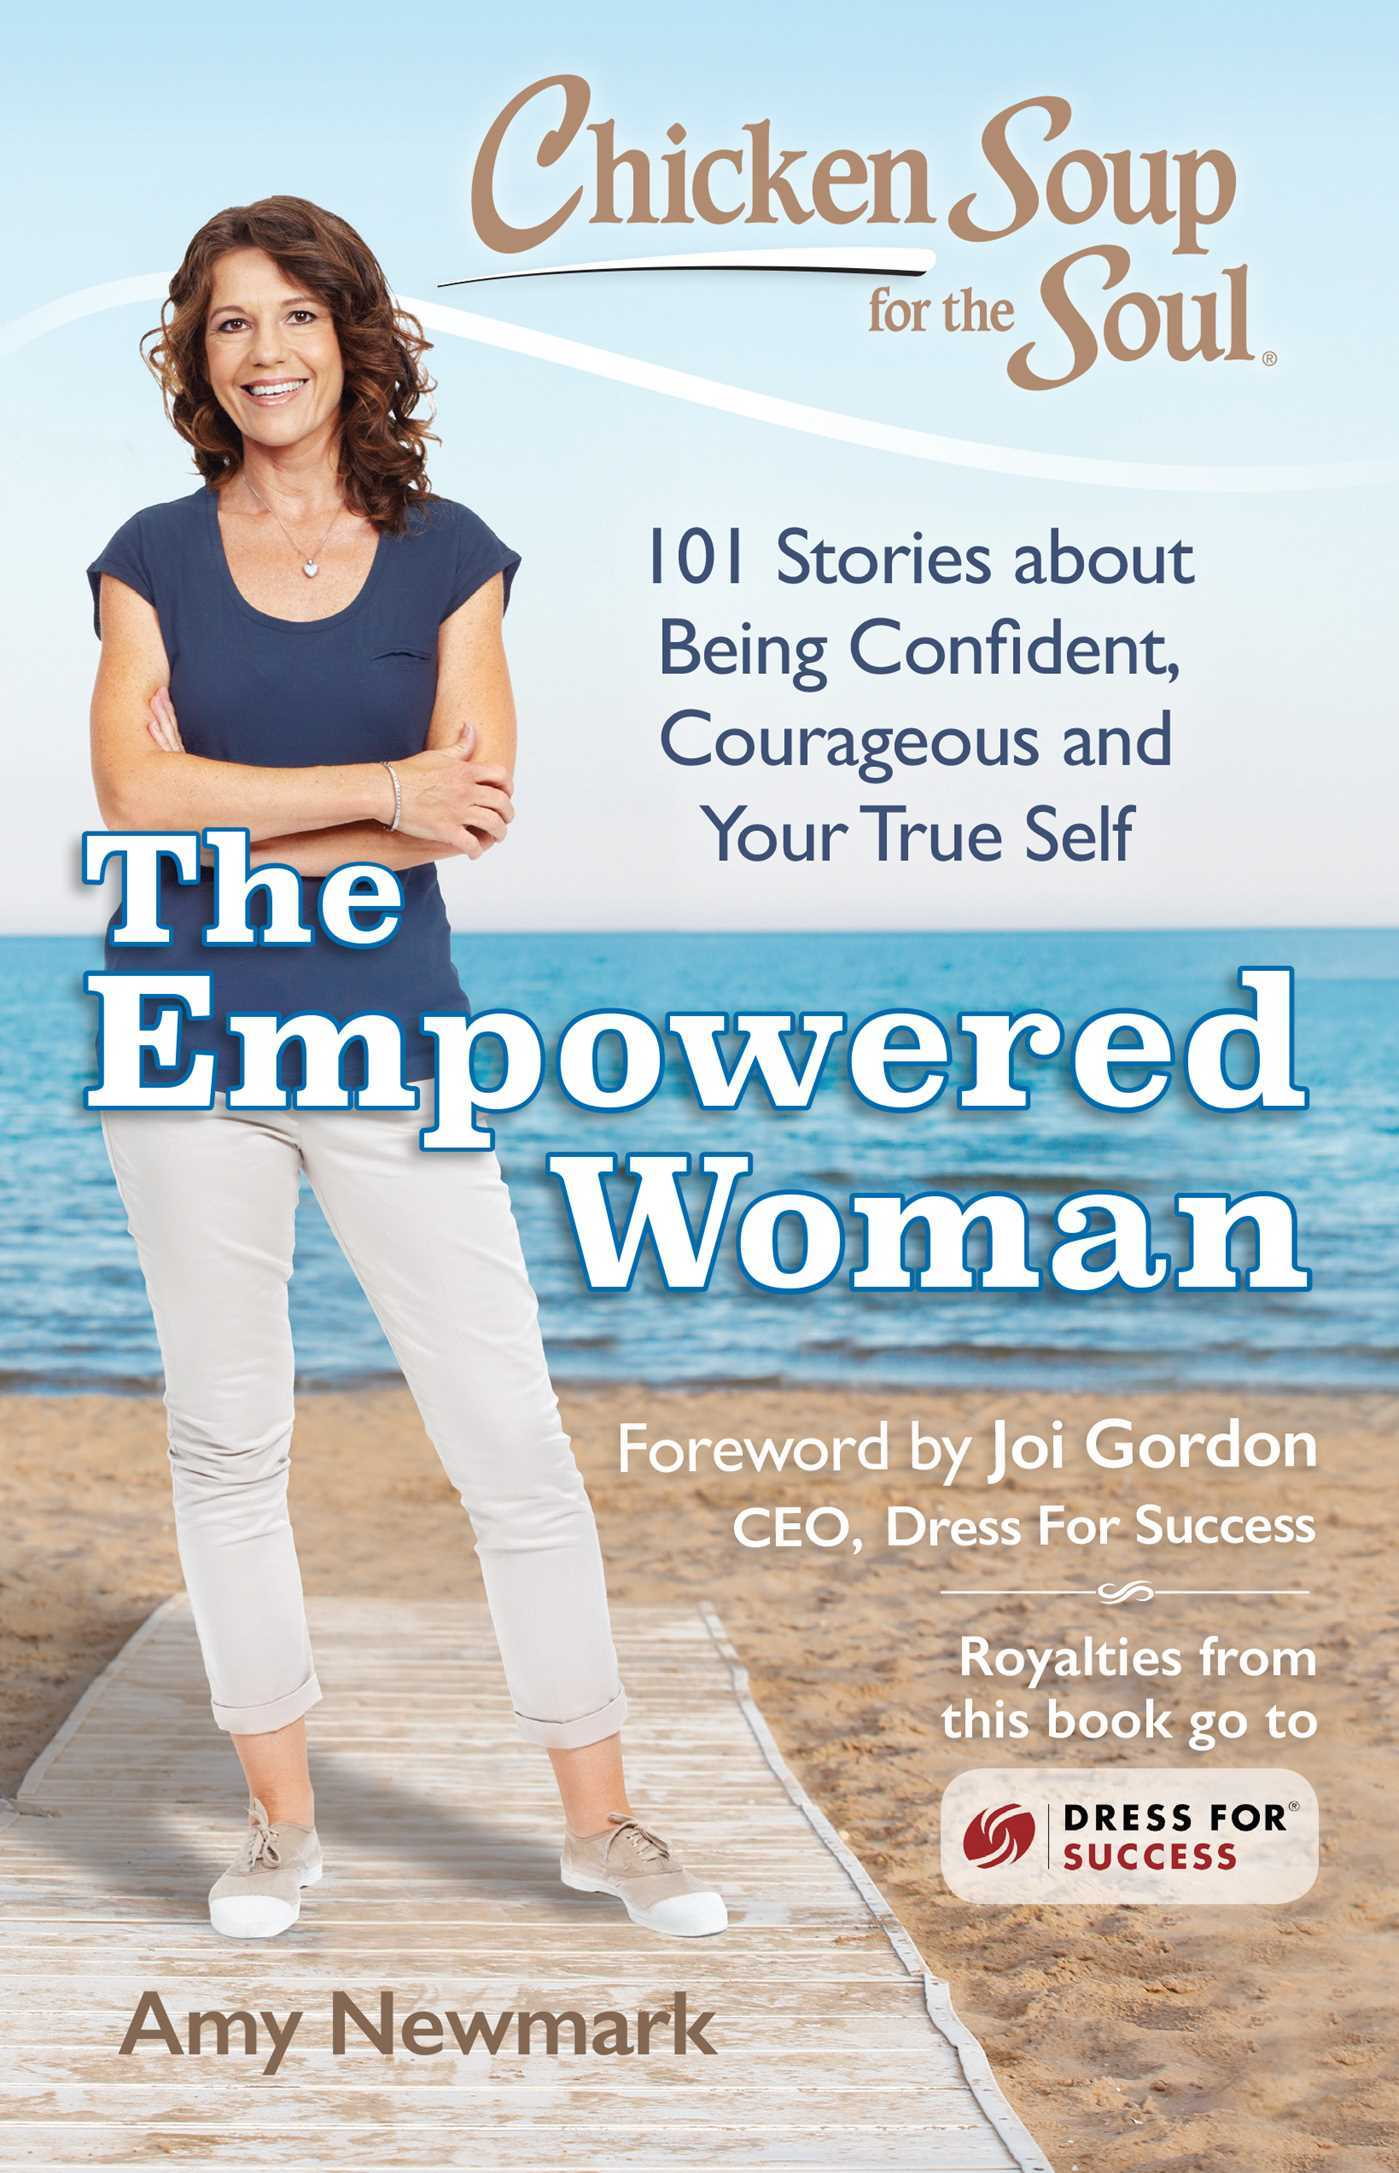 Chicken Soup for the Soul The Empowered Woman 101 Stories about Being Confident, Courageous and Your True Self